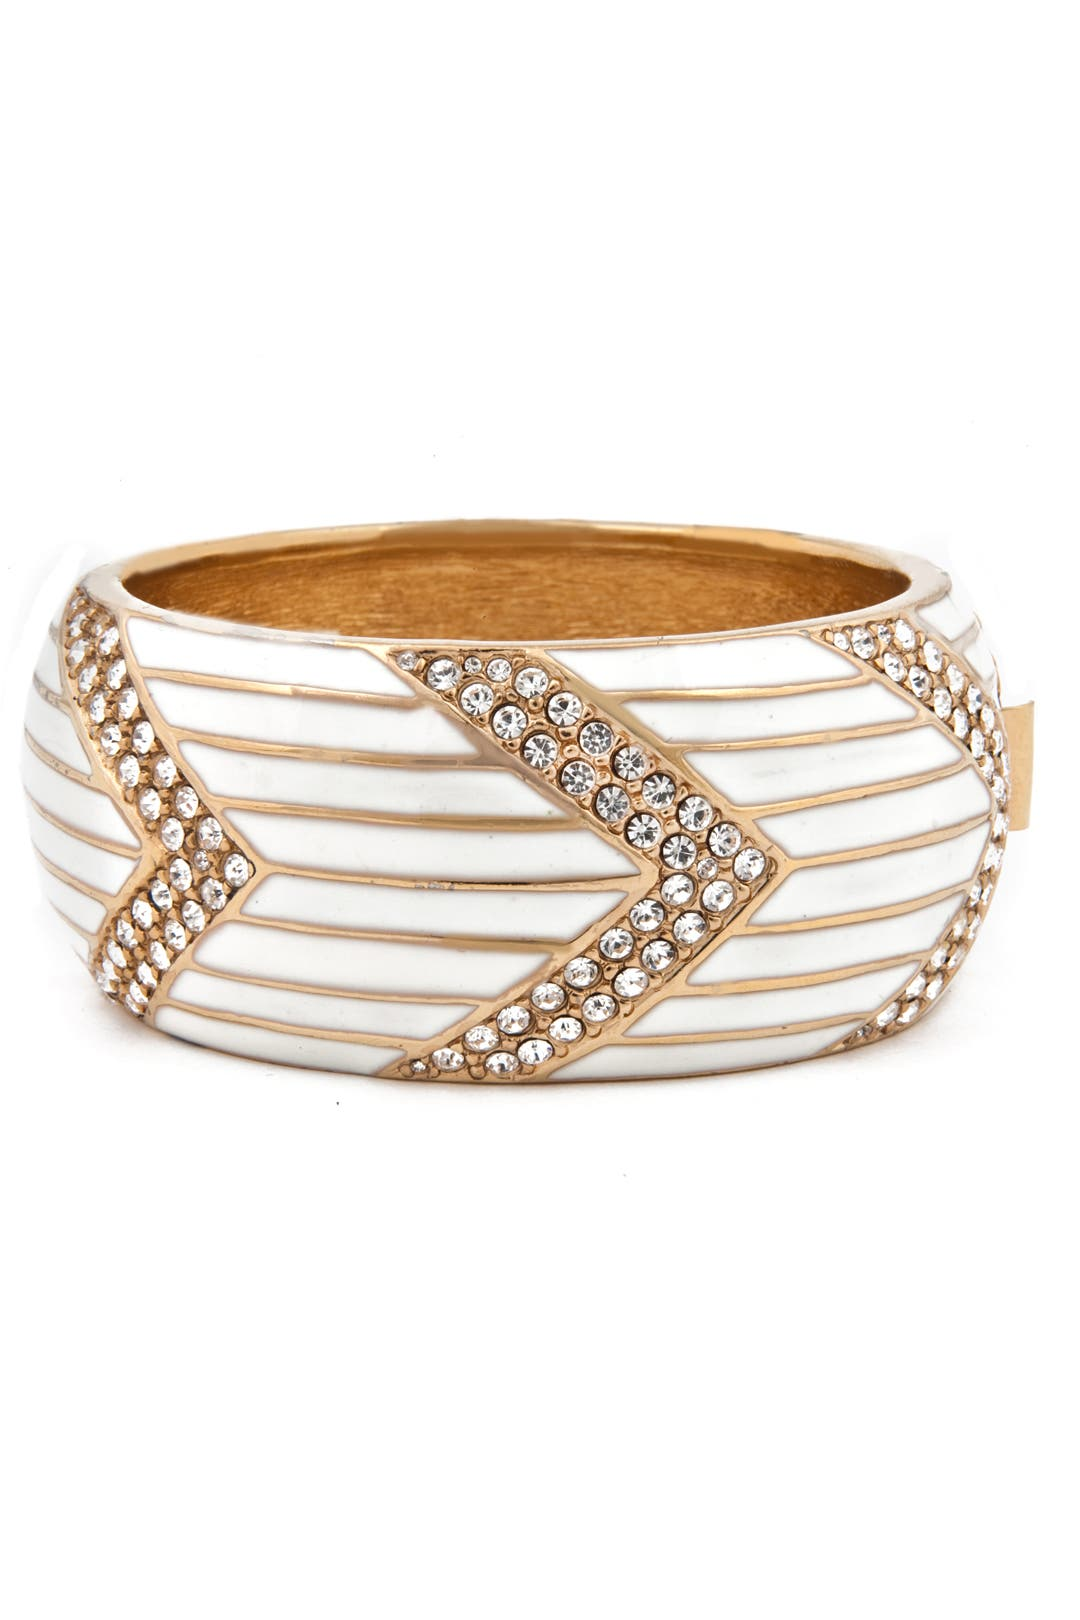 Pave Arrow Bangle by Ciner